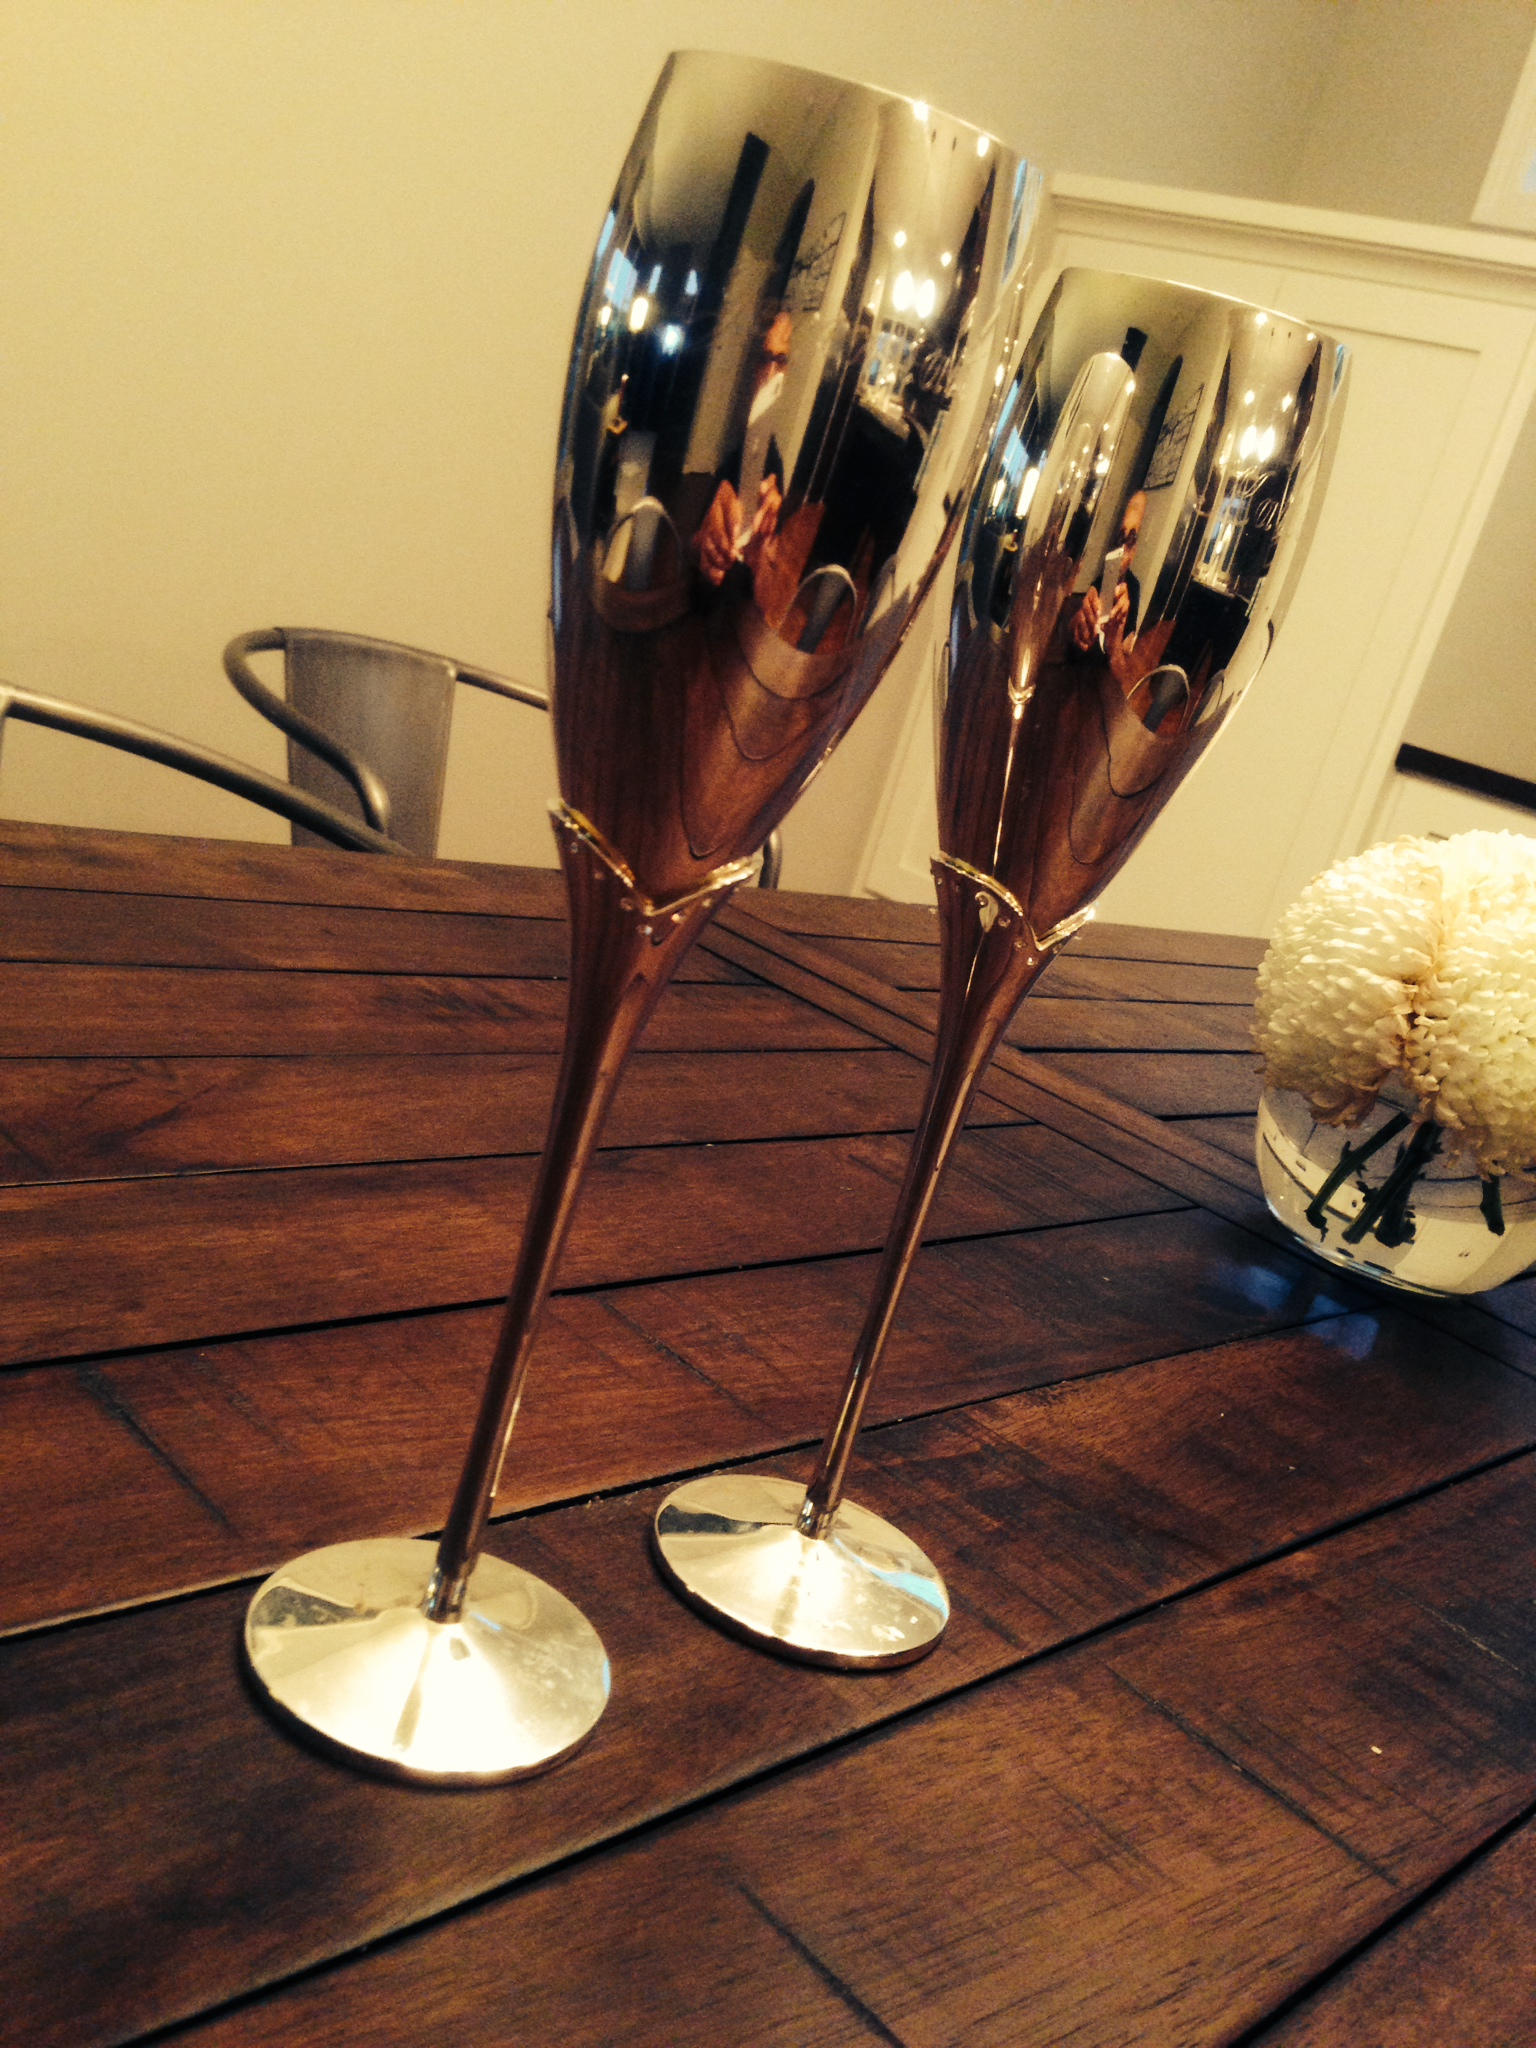 One last toast with our wedding goblets.